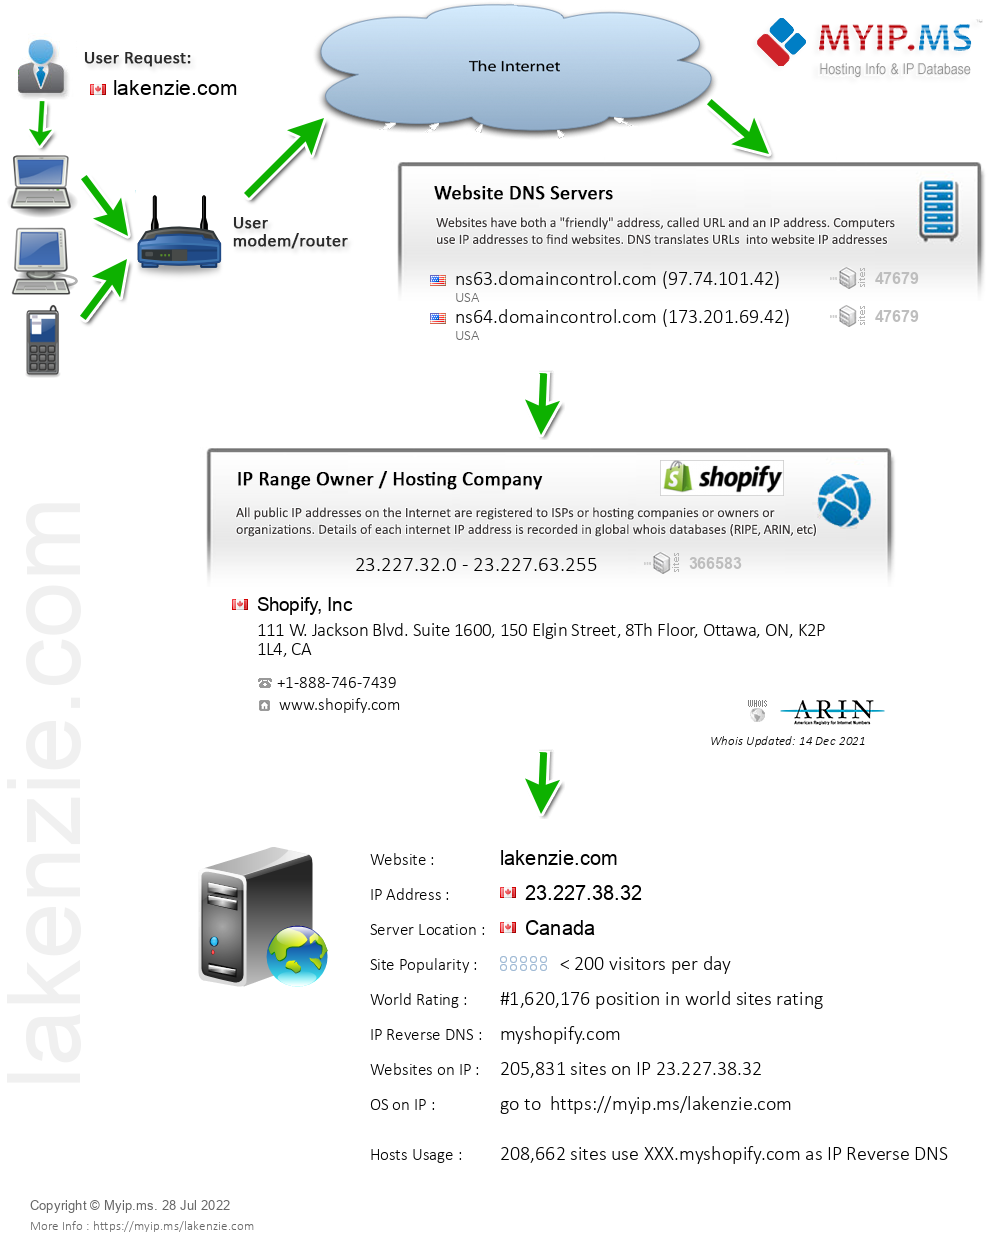 Lakenzie.com - Website Hosting Visual IP Diagram